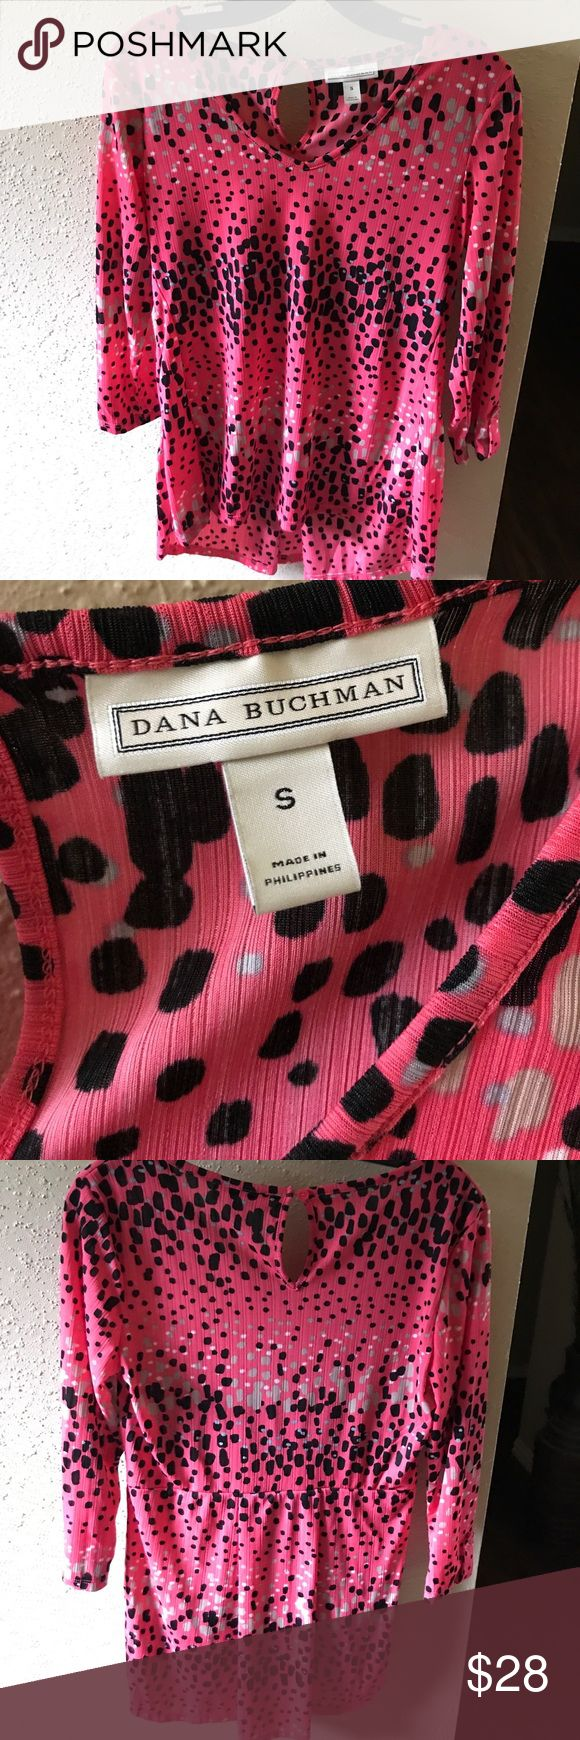 Womens Top Bright Coral polka dot top 3/4 sleeve flowy and cute with black skinny jeans or capri pants. Dana Buchman Tops Blouses